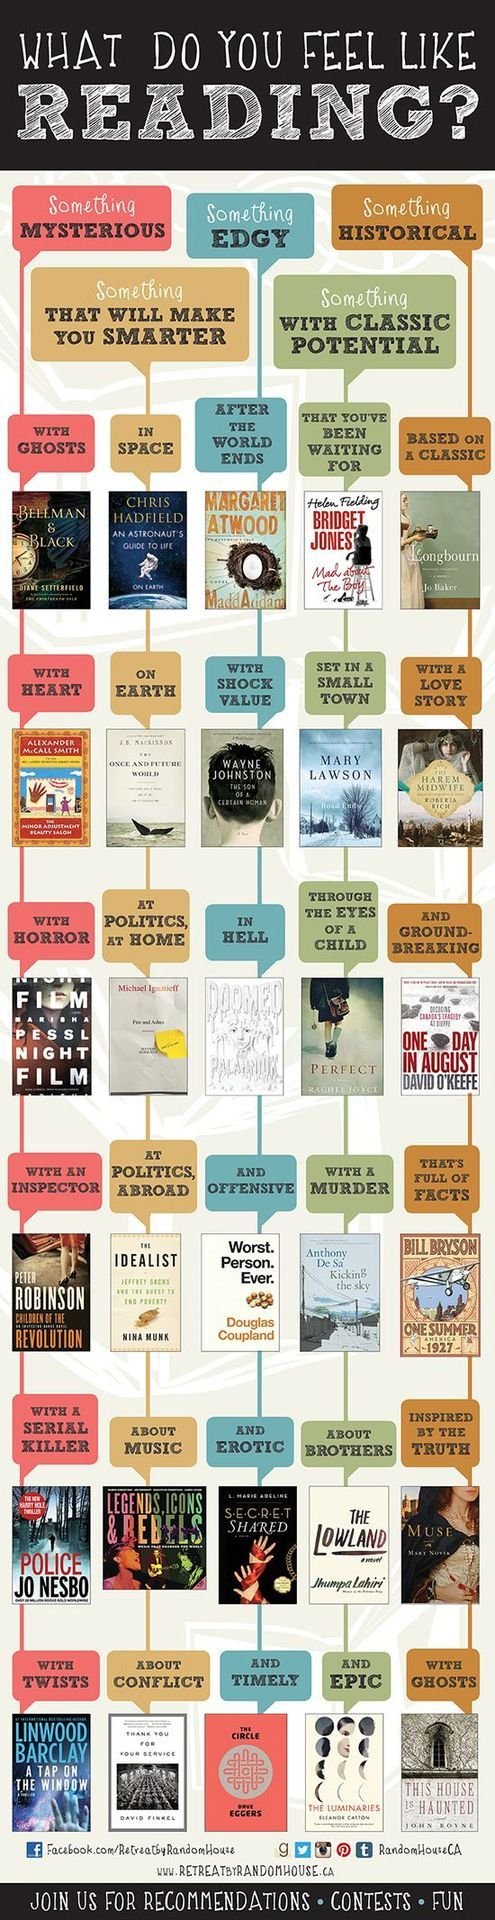 The Bibliophile Files: What do you feel like reading? Infographic